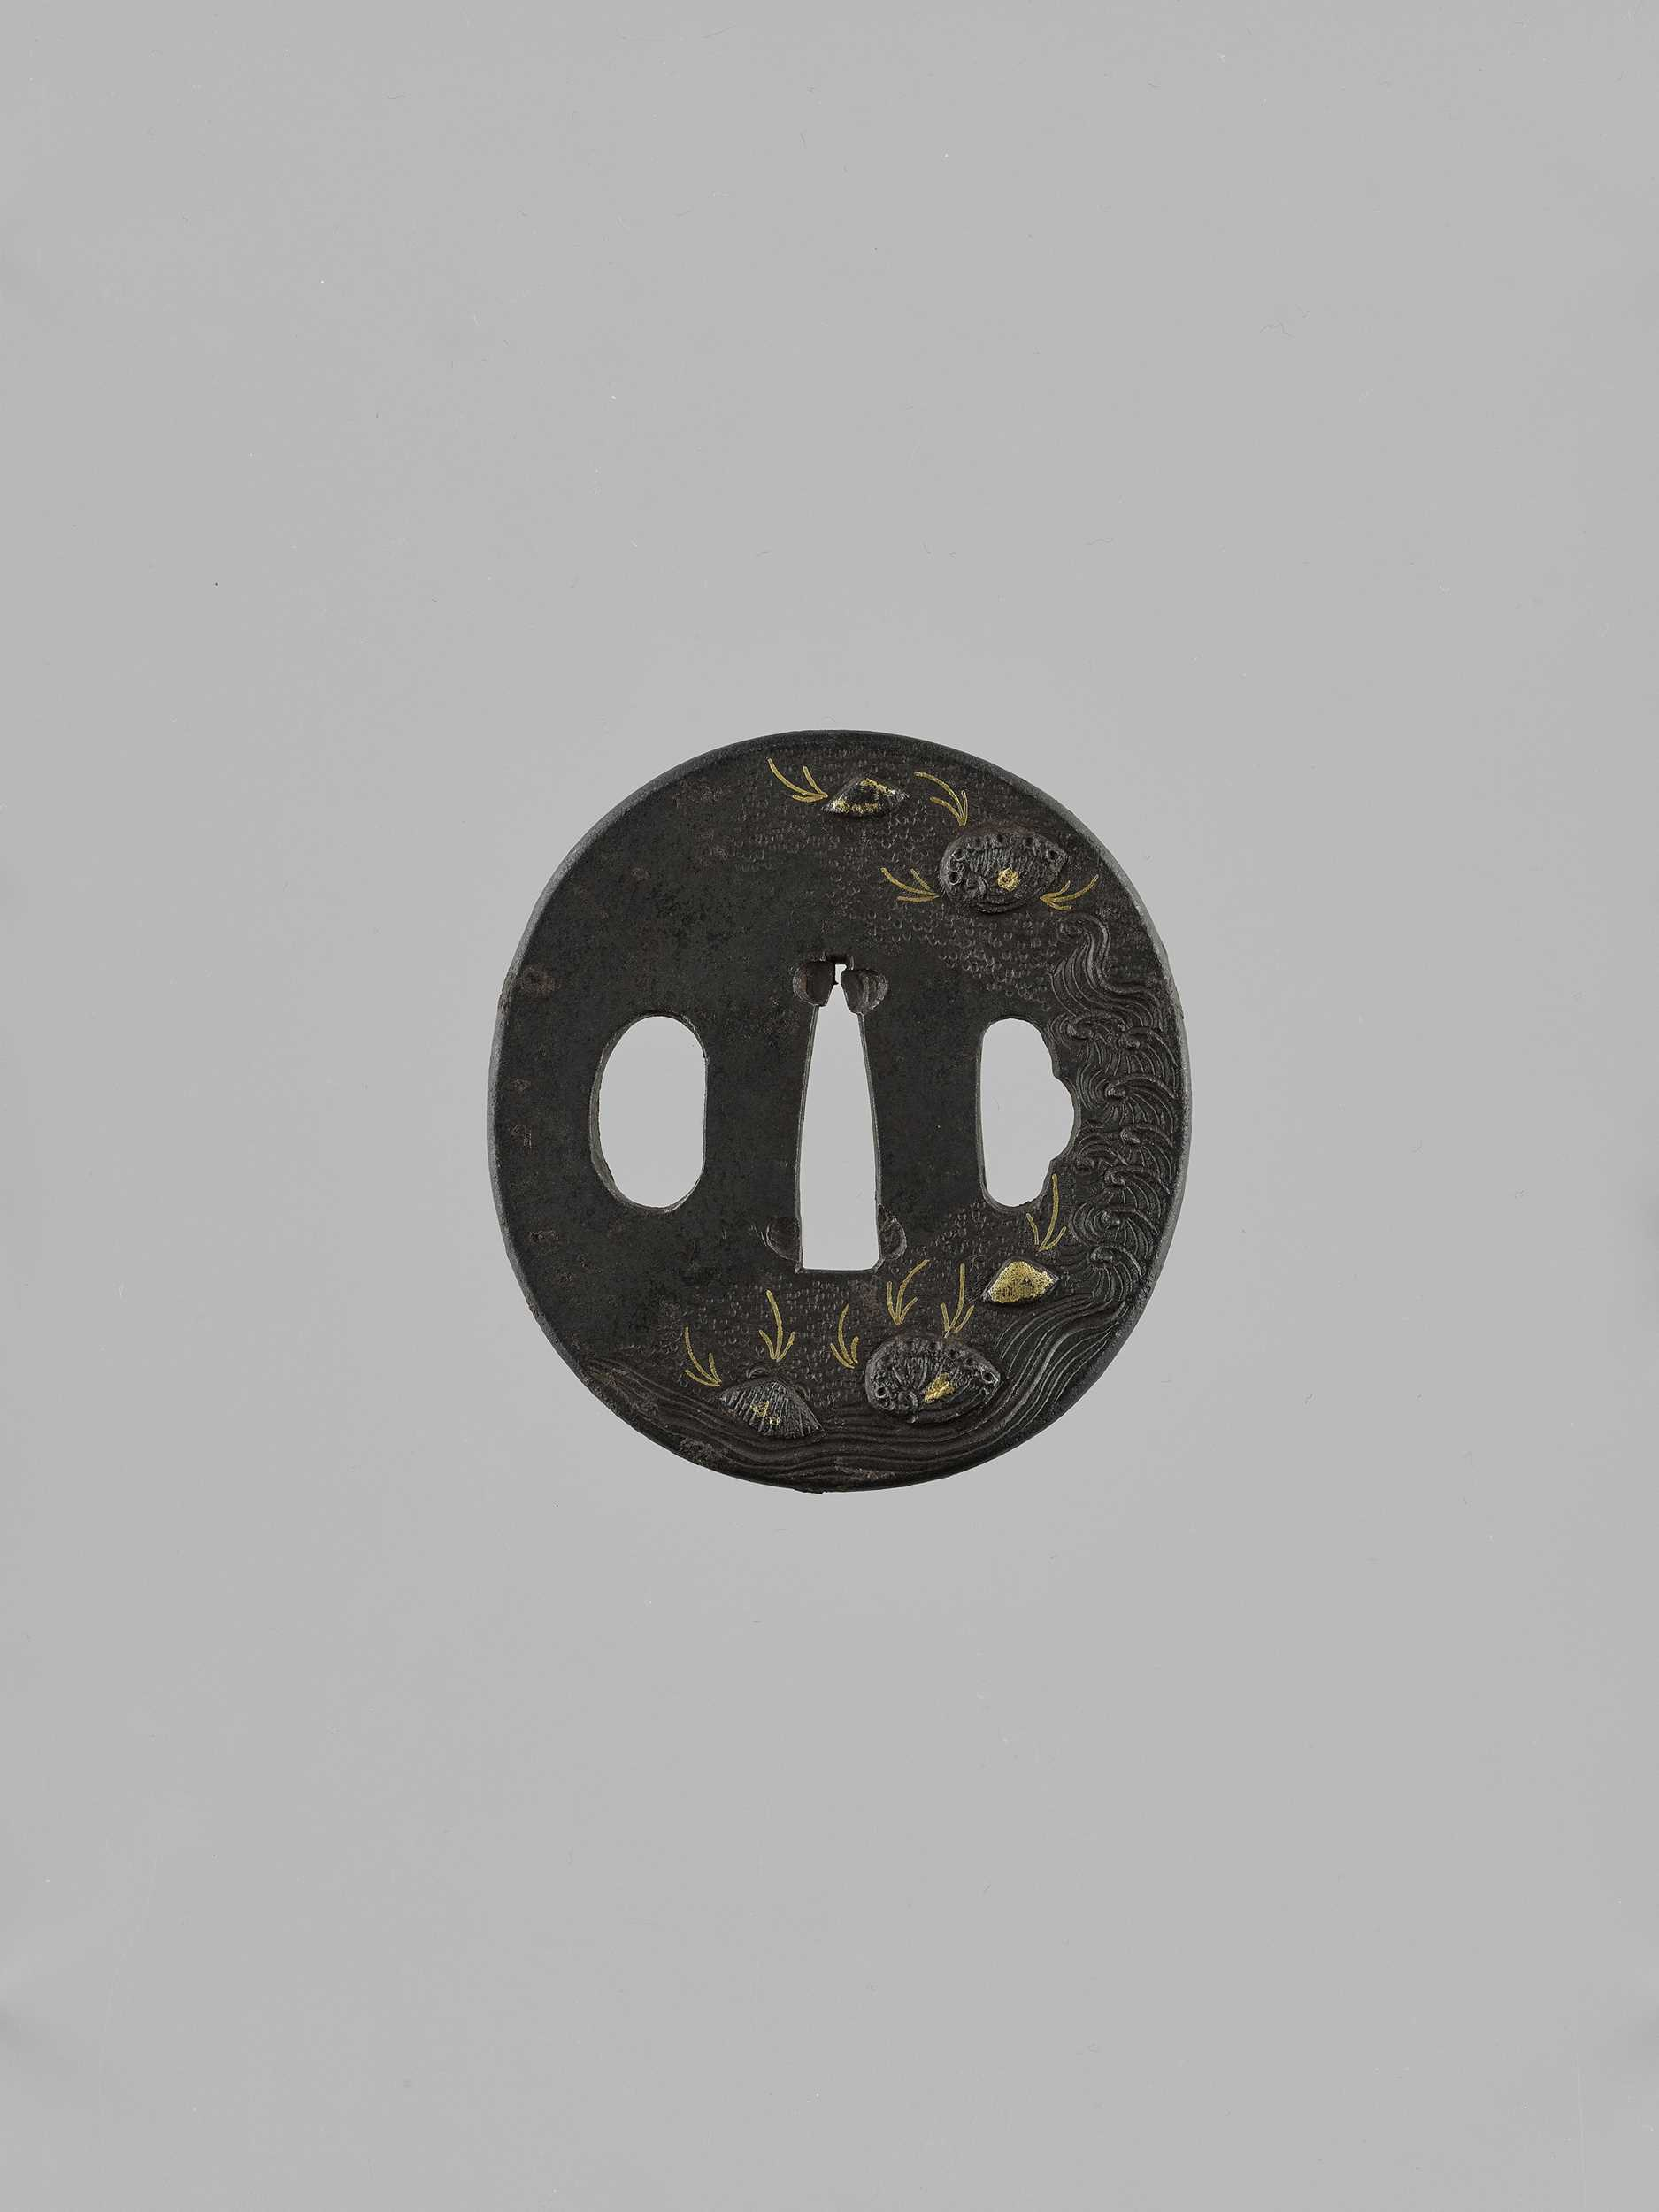 Lot 34 - AN IRON TSUBA WITH SEASHELLS